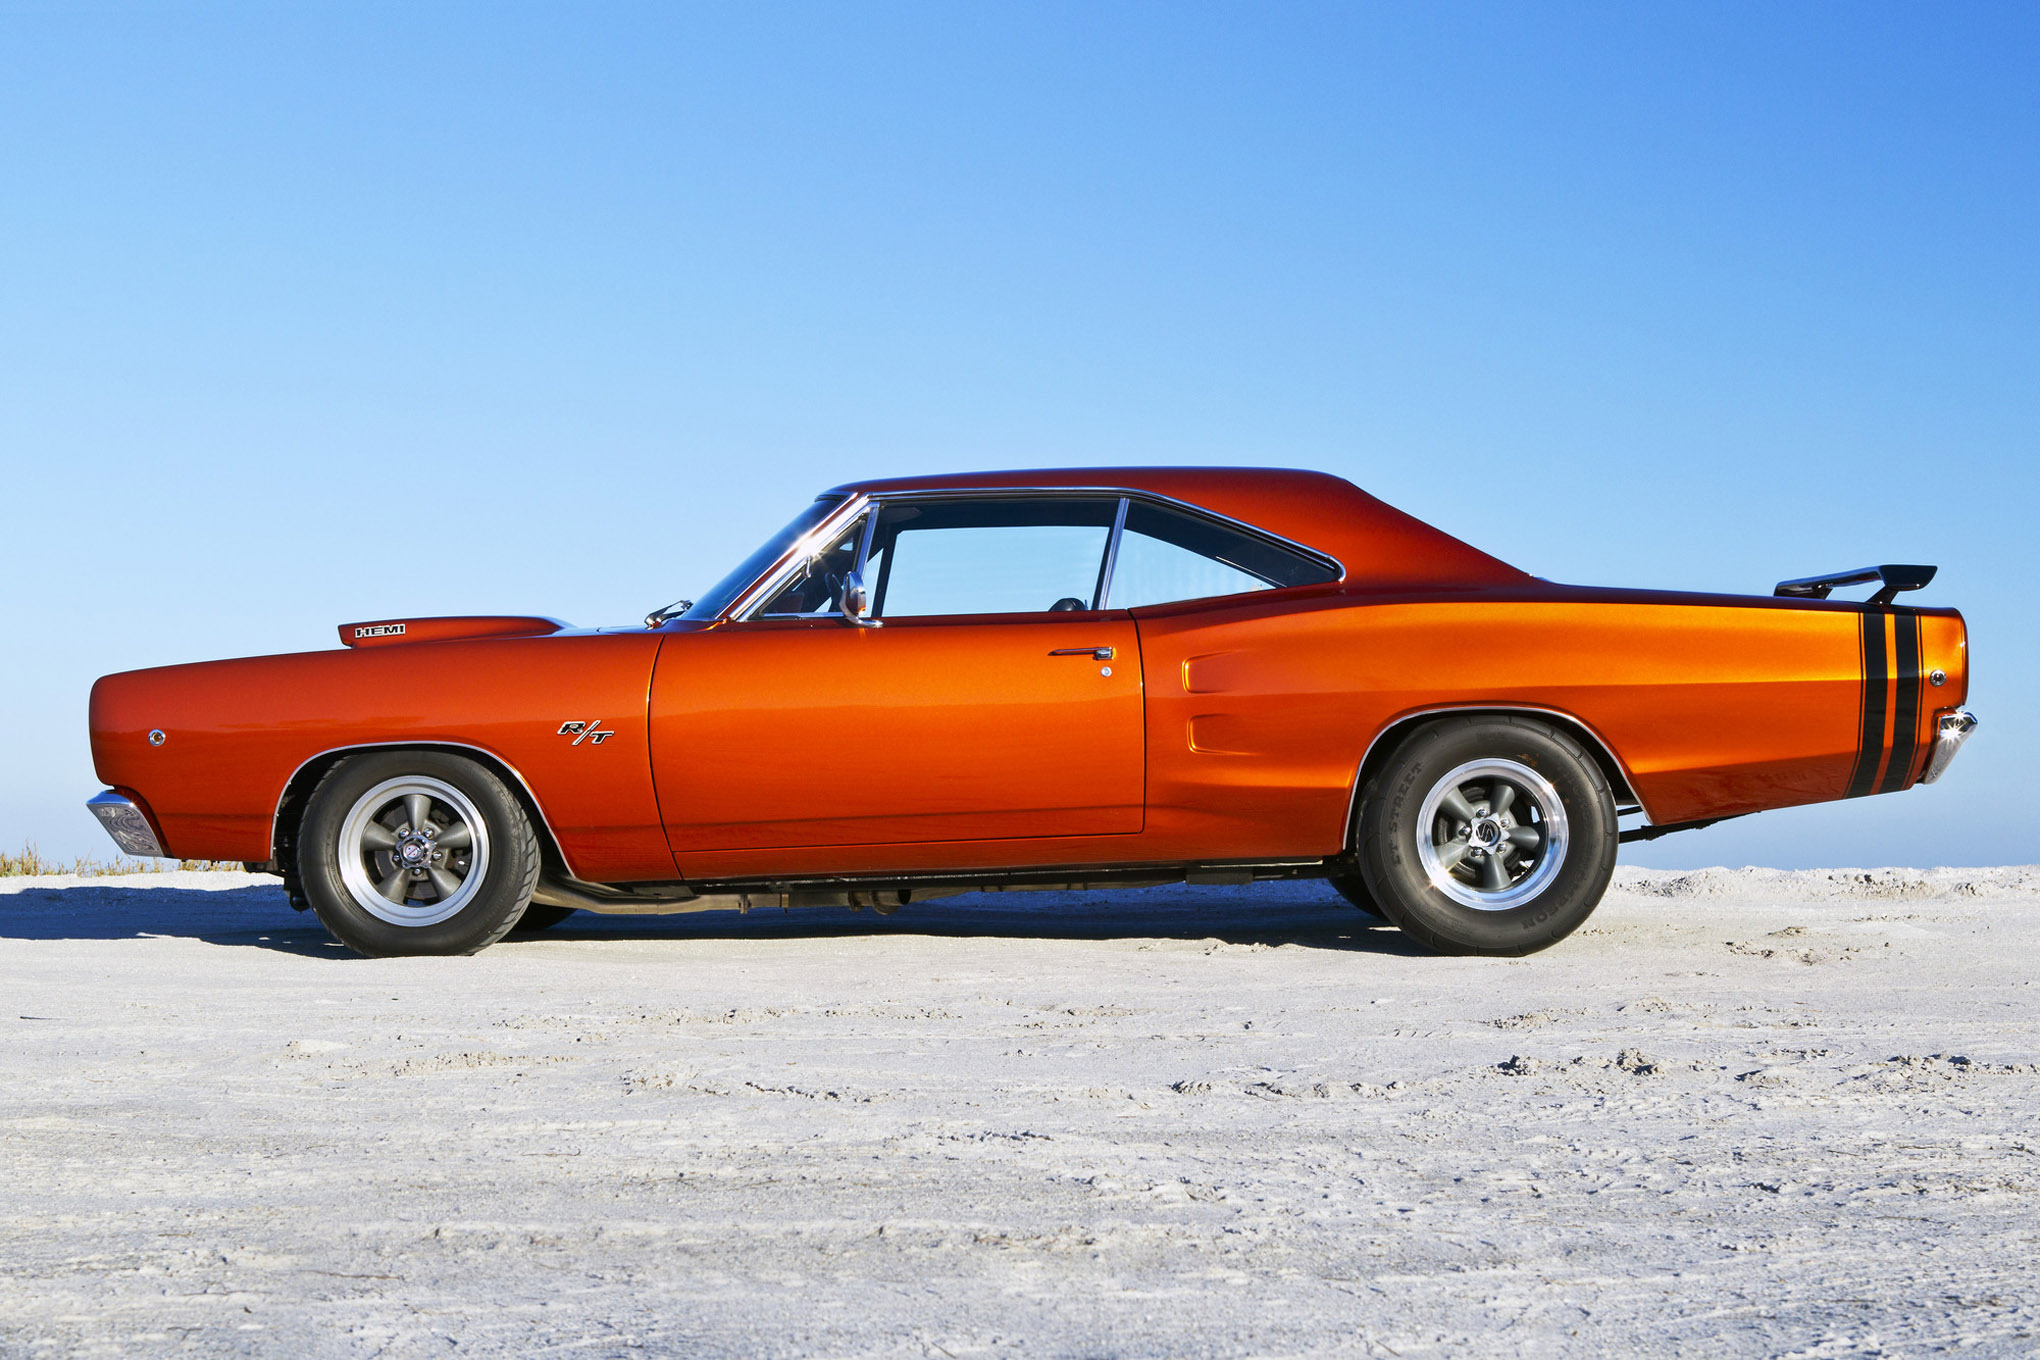 This 1968 Coronet Has A 650hp Hemi, A Great Father And Son Story, And 10-Second Time Slips